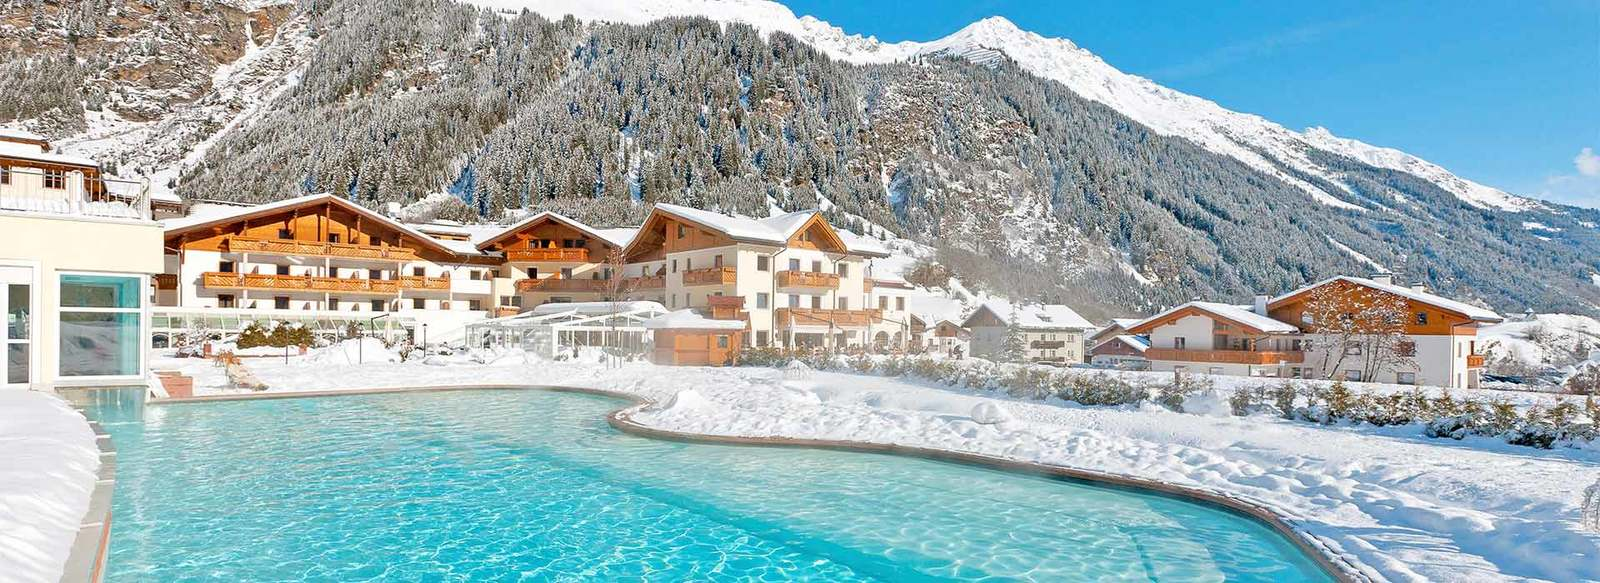 8.000 mq di wellness in Sud Tirolo